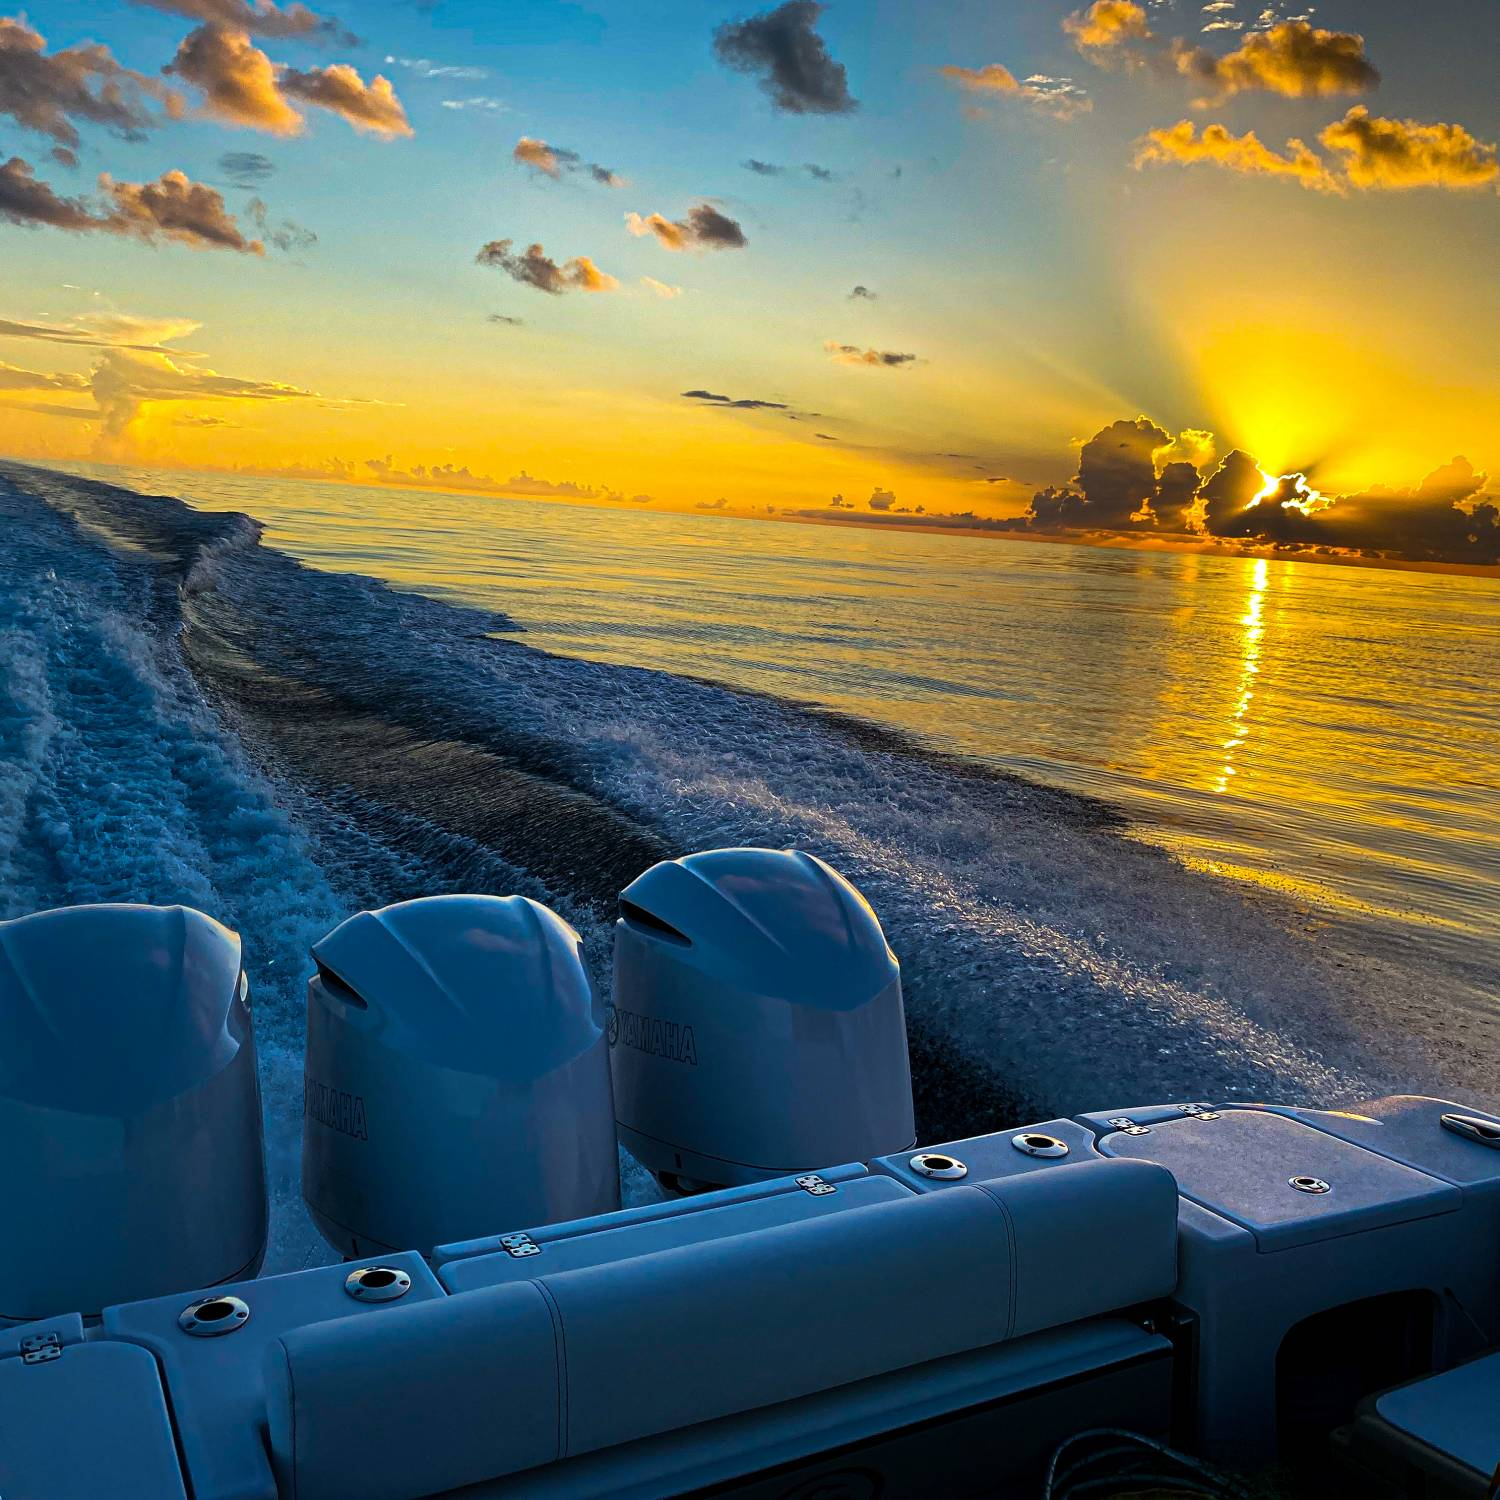 Title: Early morning run to Dry Tortugas - On board their Sportsman Open 352 Center Console - Location: Gulf of Mexico. Participating in the Photo Contest #SportsmanAugust2021